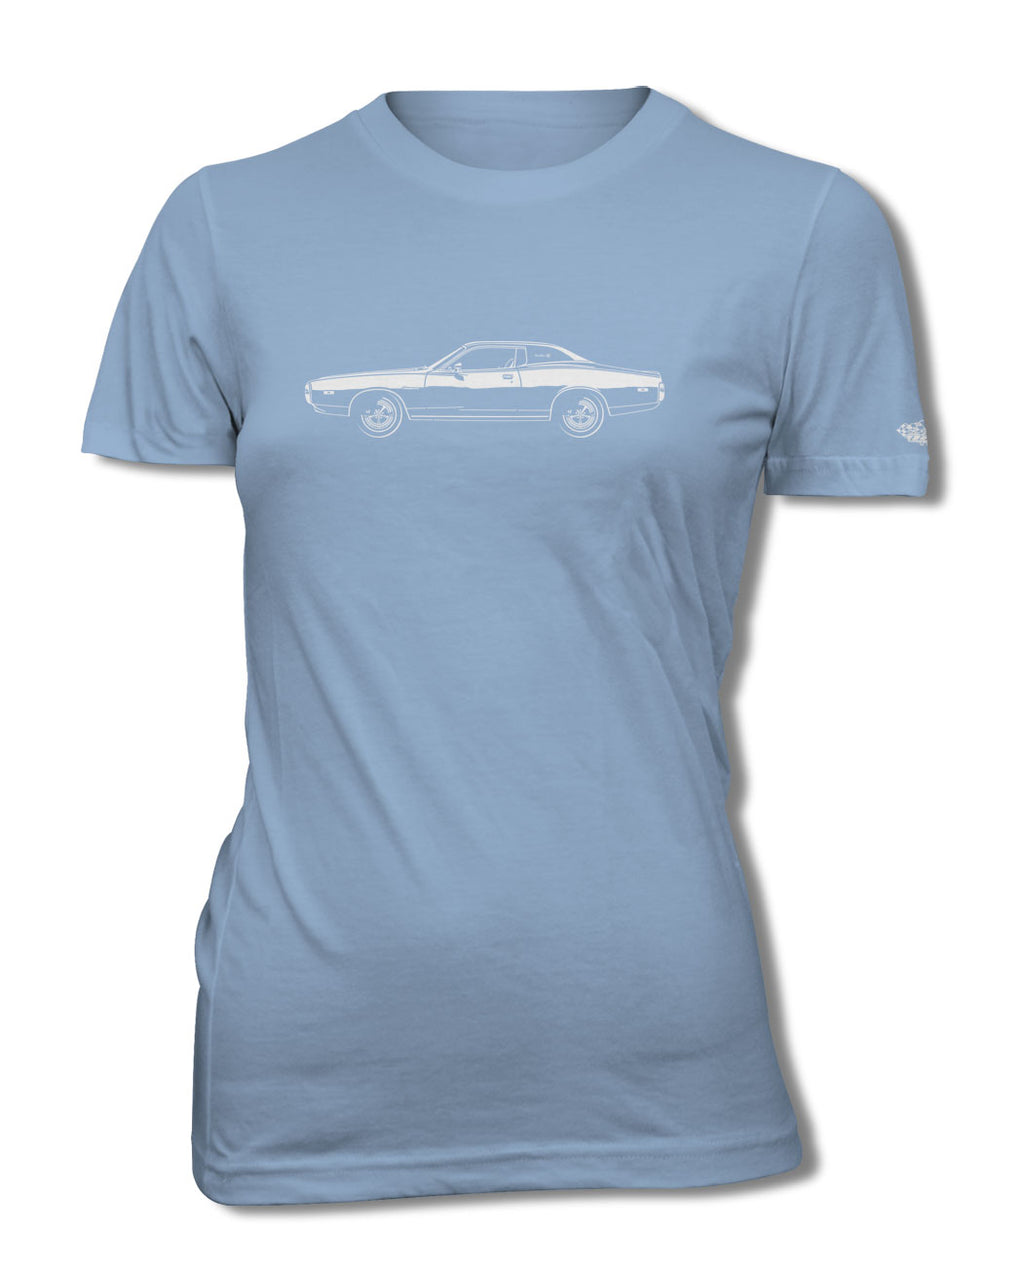 1972 Dodge Charger SE Hardtop T-Shirt - Women - Side View